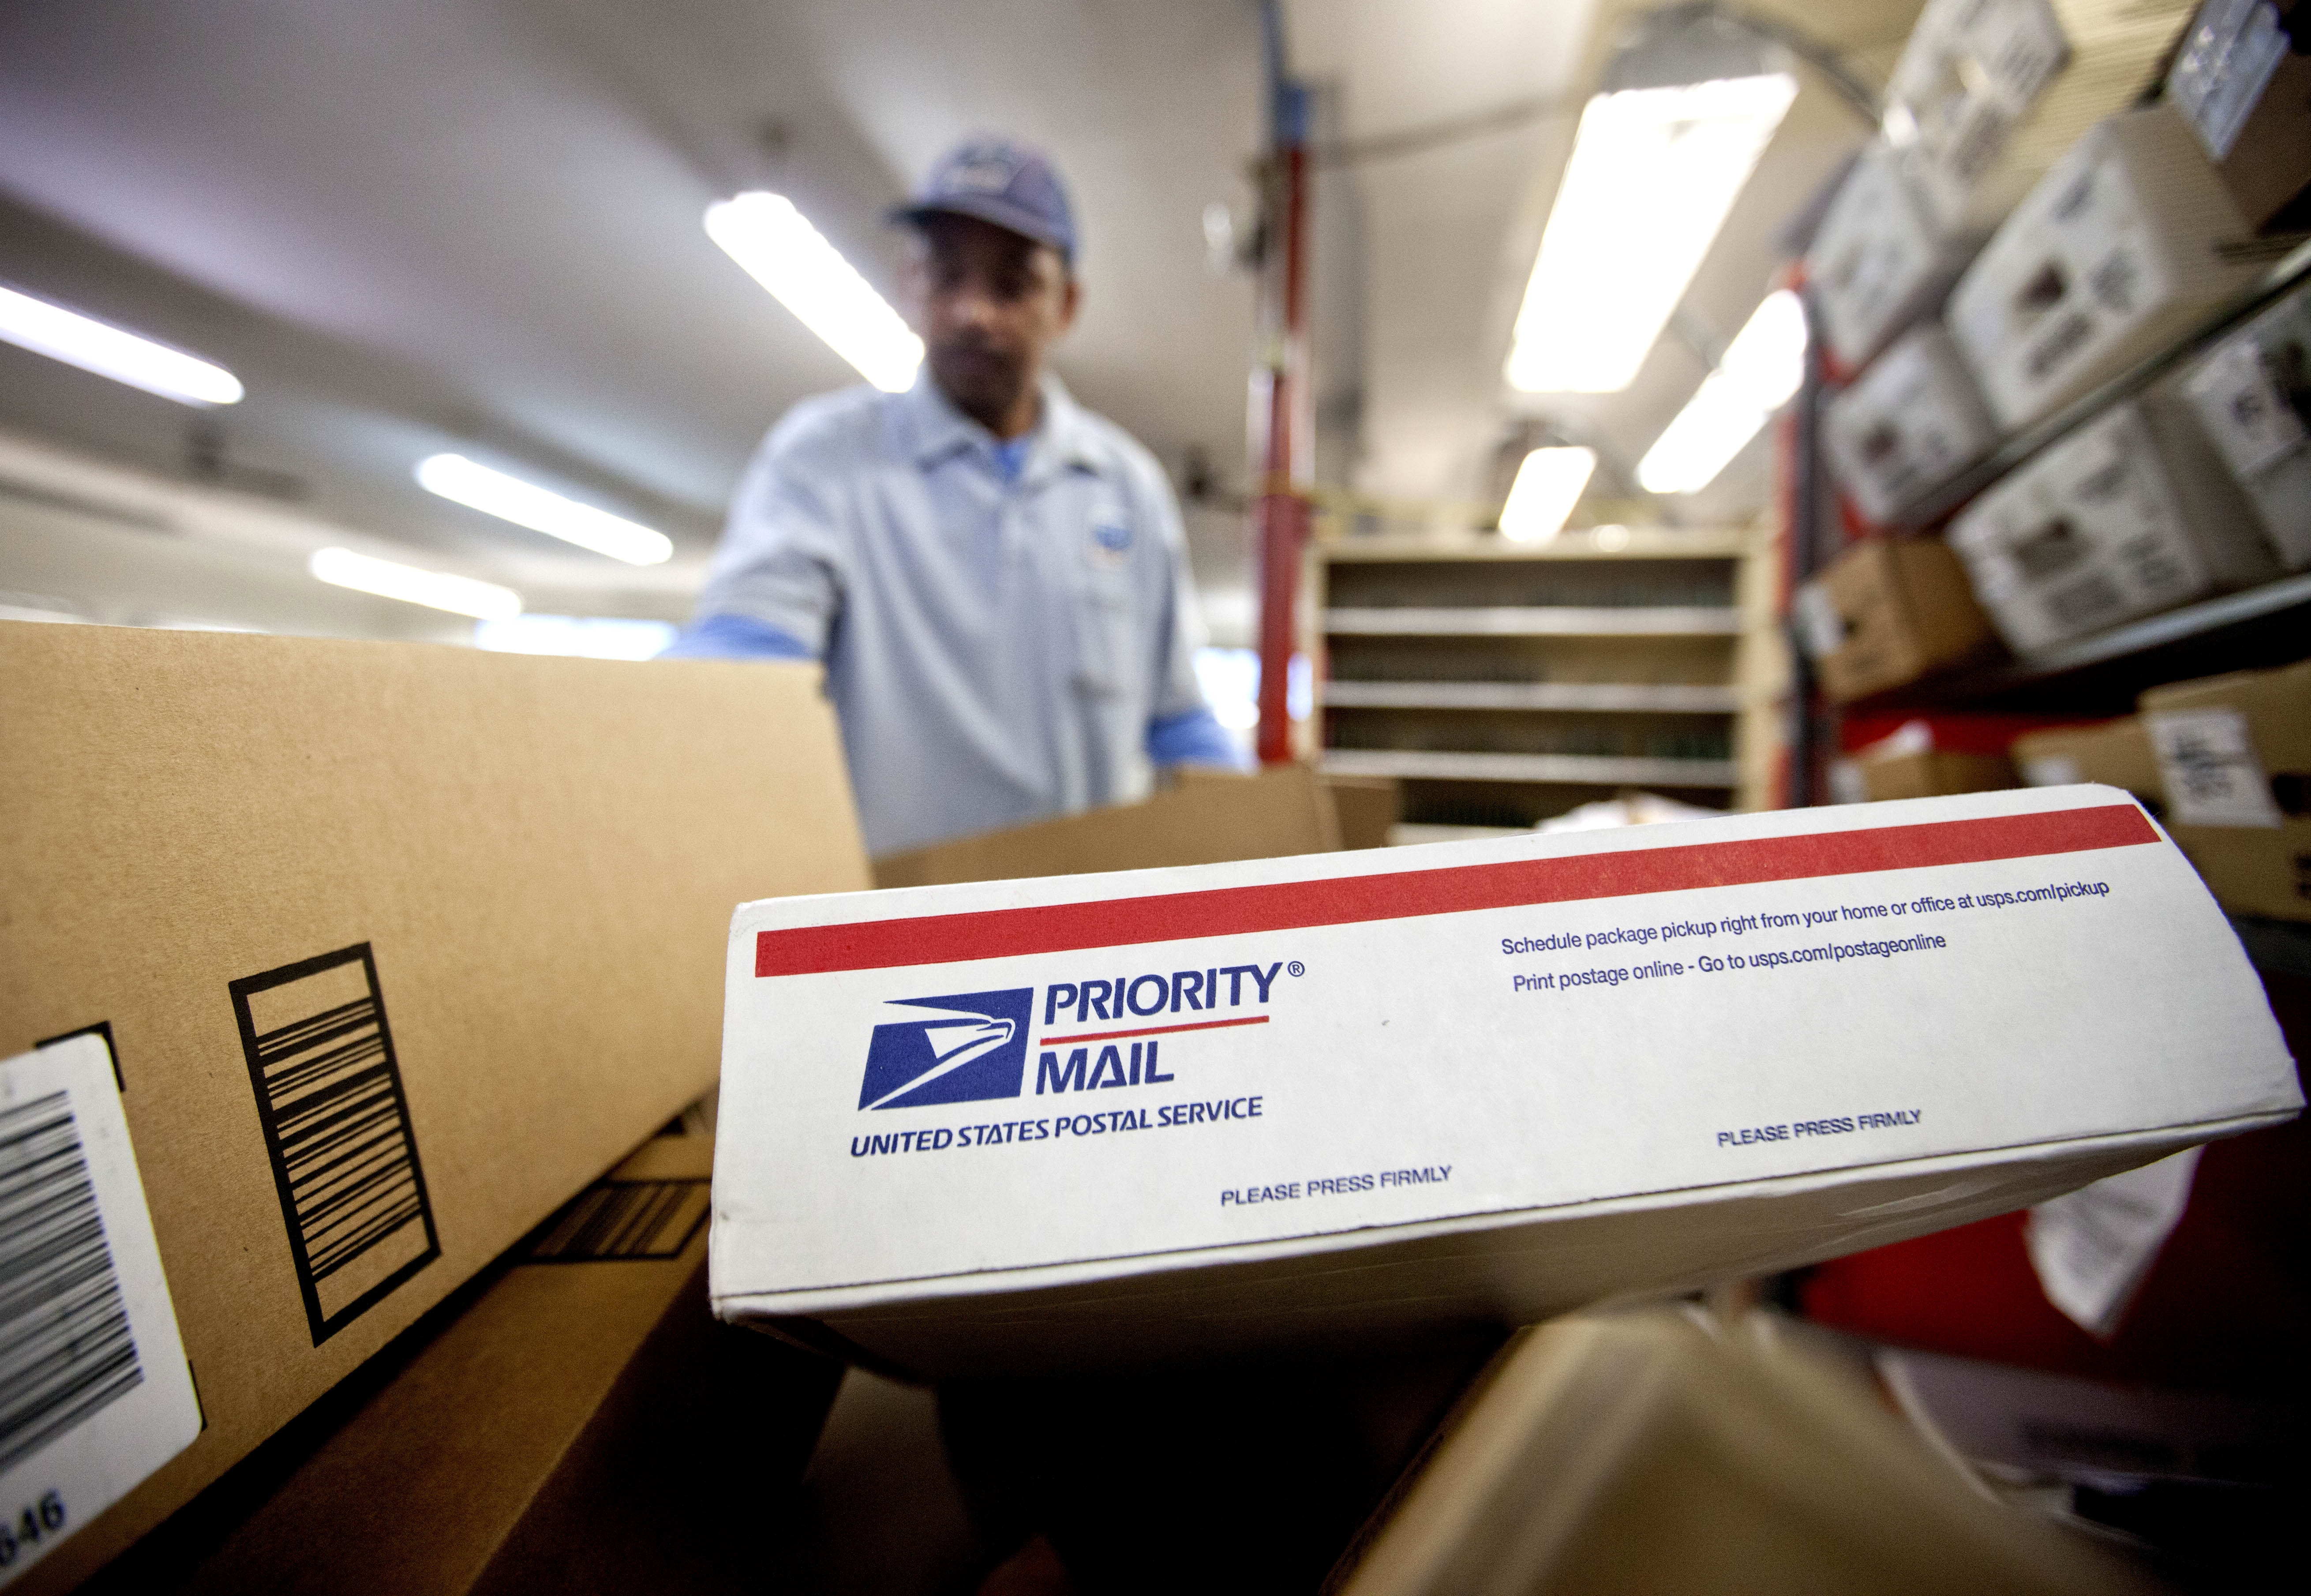 Congress should act to relieve the U.S. Postal Service of unreasonable burdens and allow it to modernize and compete for business.